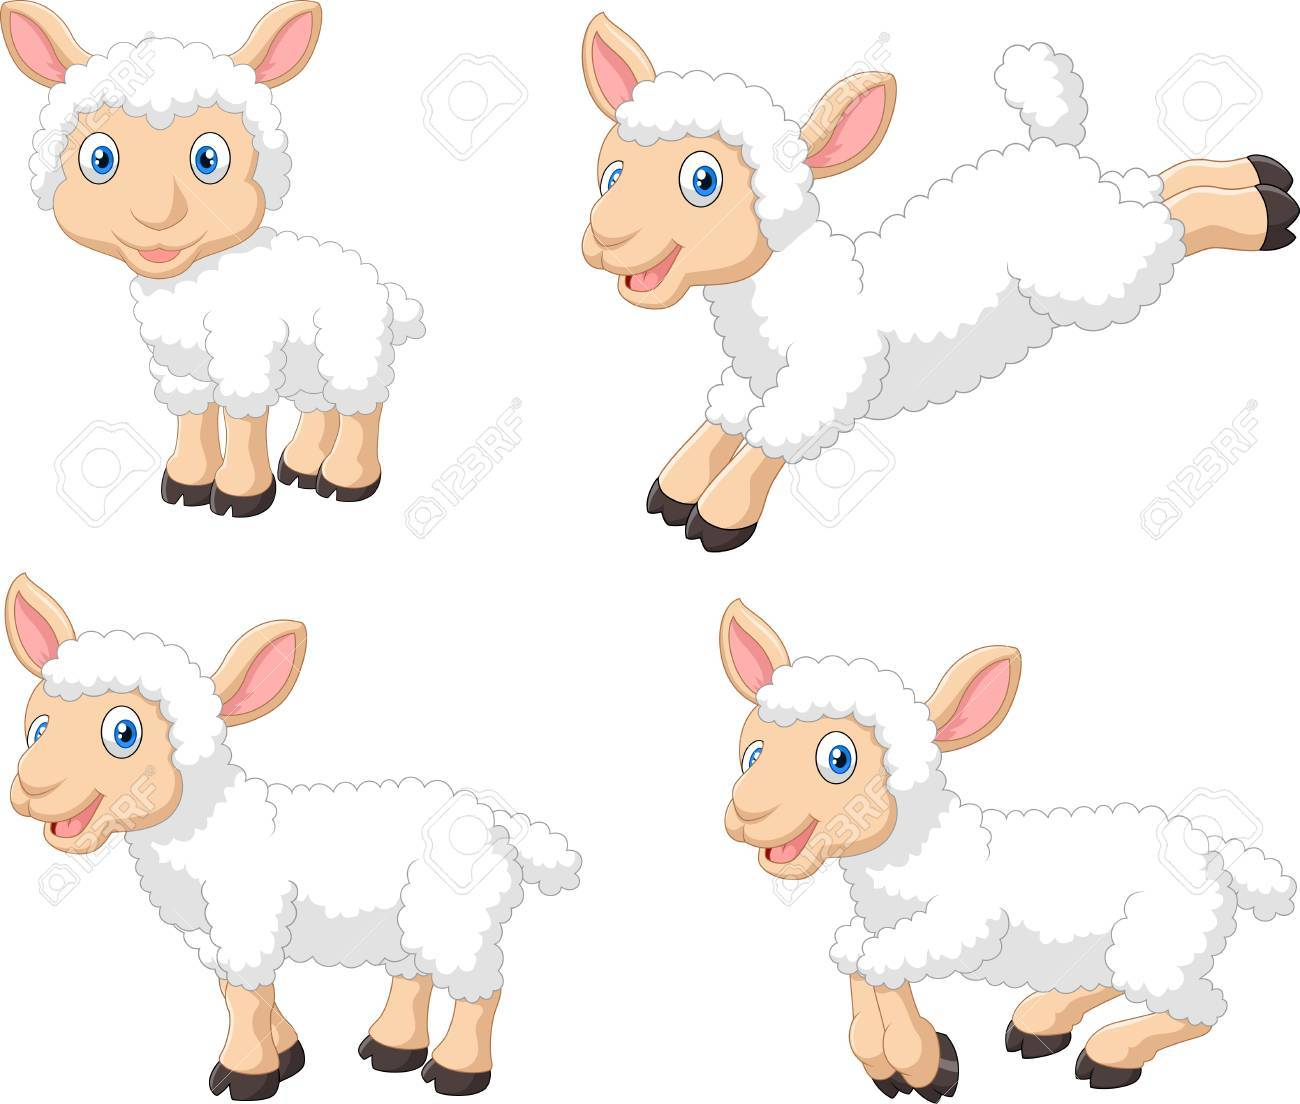 illustration of Cute cartoon sheep collection set, isolated on white background - 45971242